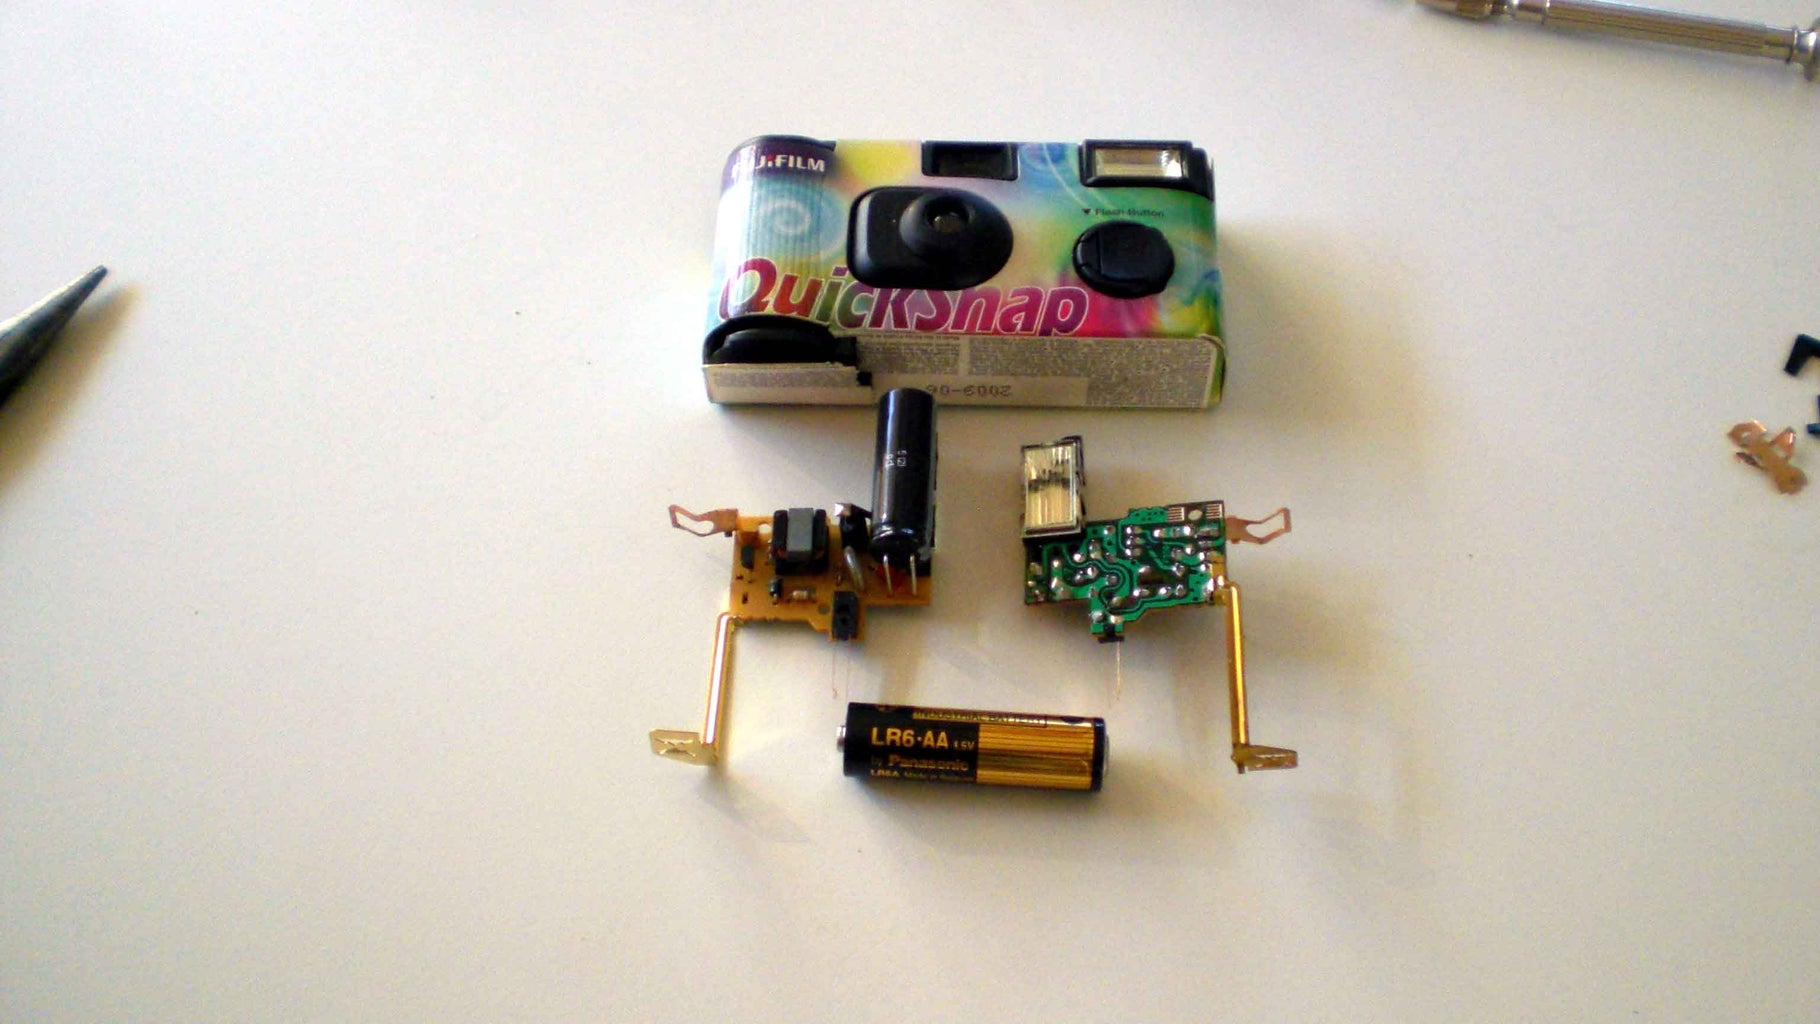 High Voltage Power Supply for Nixies, CFL, Neon-Glow-Bulbs Etc. for My Steampunk Objects